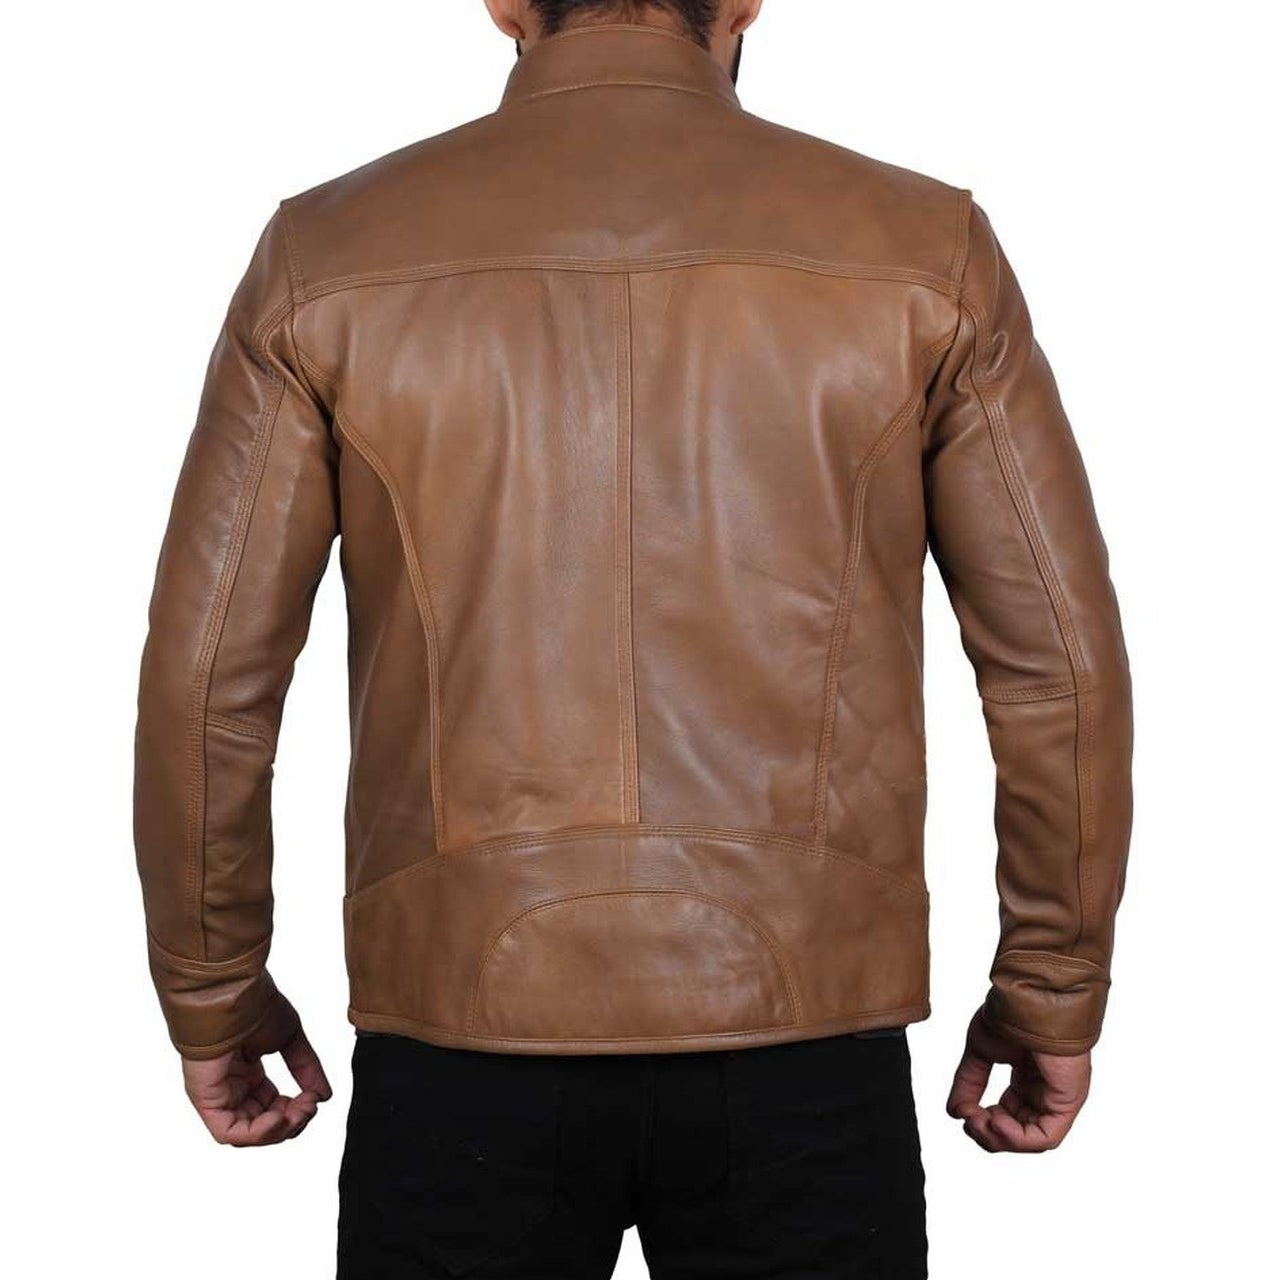 Men Light Brown Leather Jacket - Leather Jacket